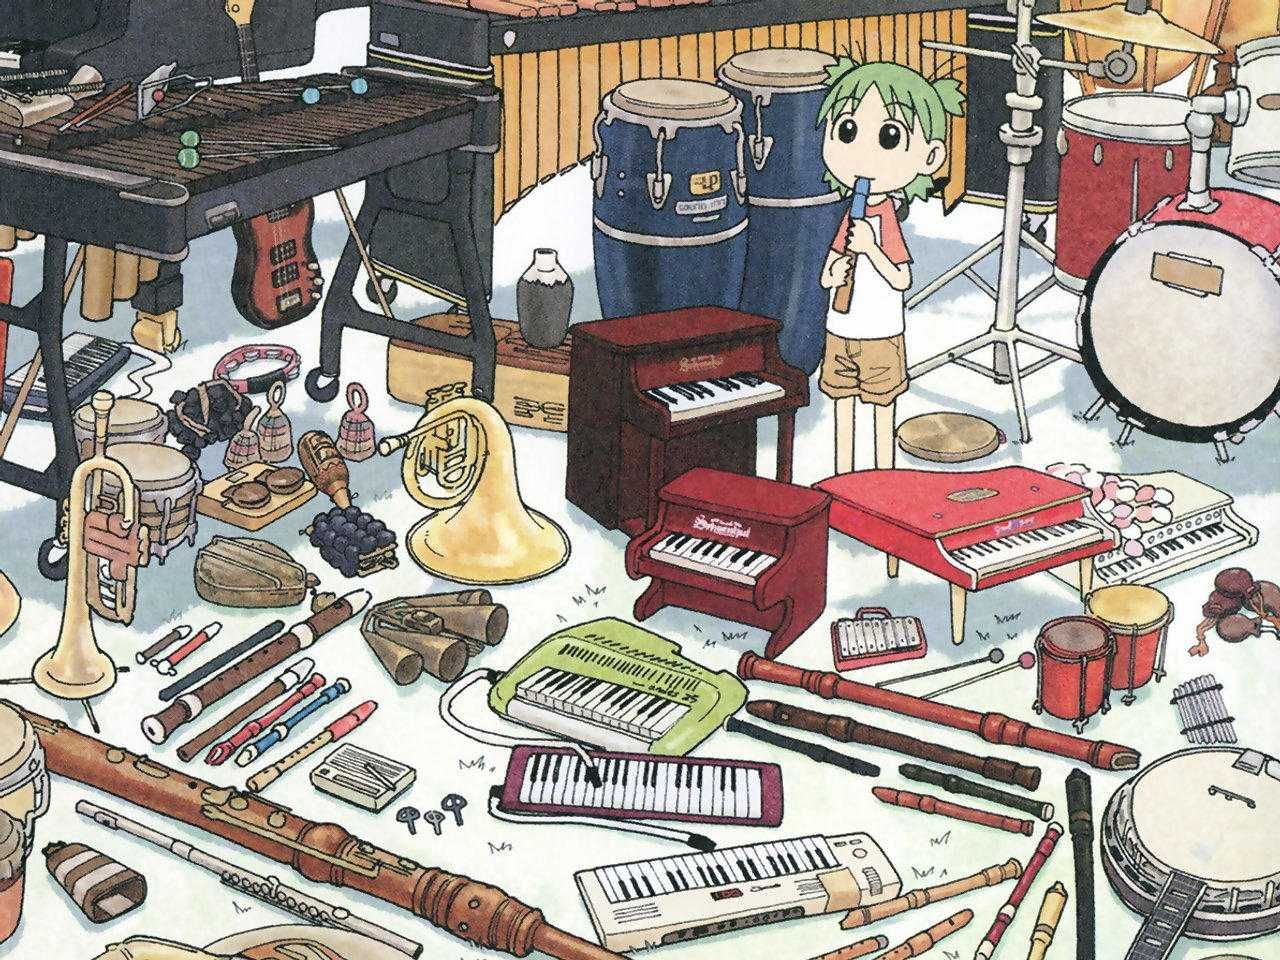 Yotsuba Wallpaper | 1280x800 | ID:56318 - WallpaperVortex.com